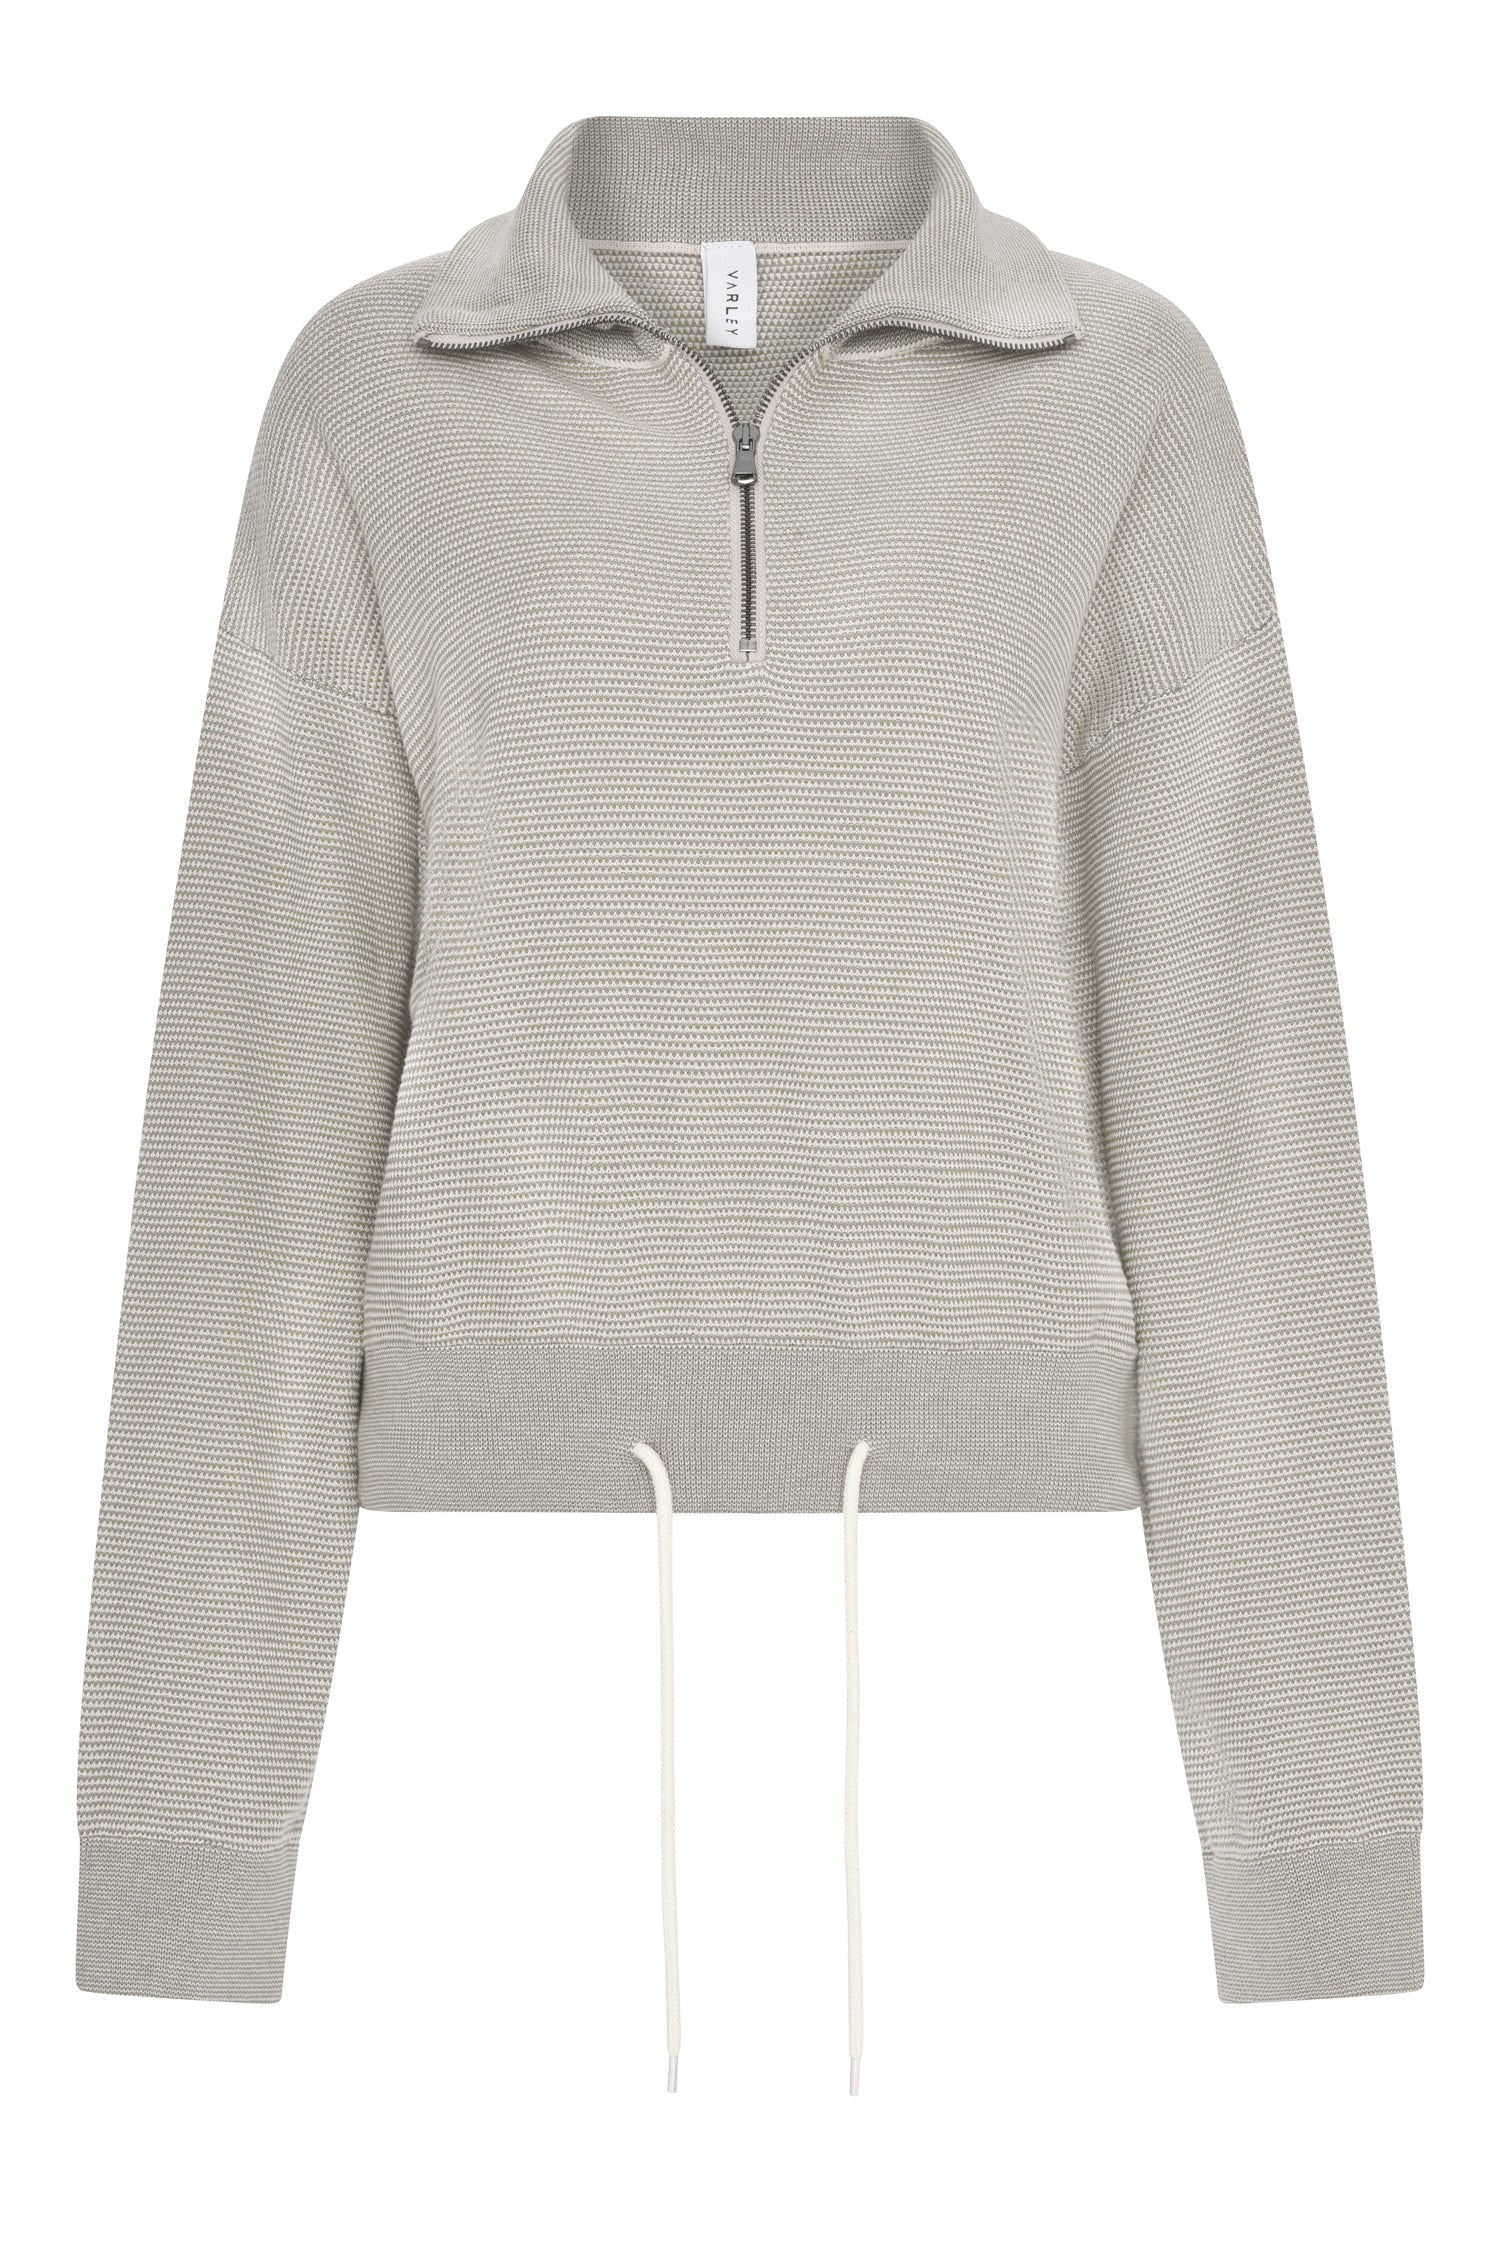 Buckingham Knit Half Zip | Cobweb Silver